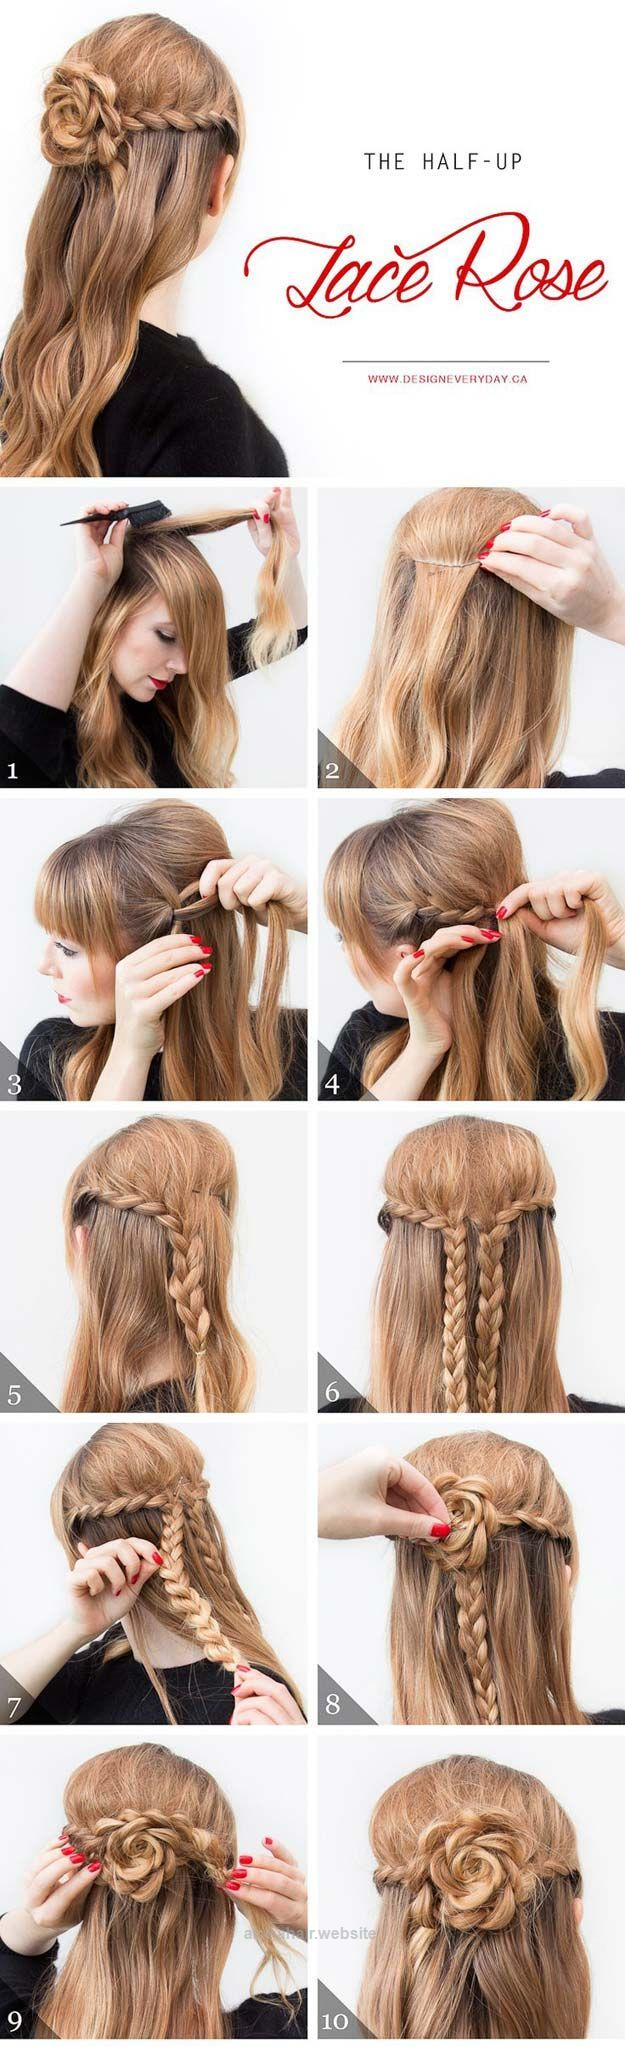 Cool and easy diy hairstyles the half up lace rose quick and